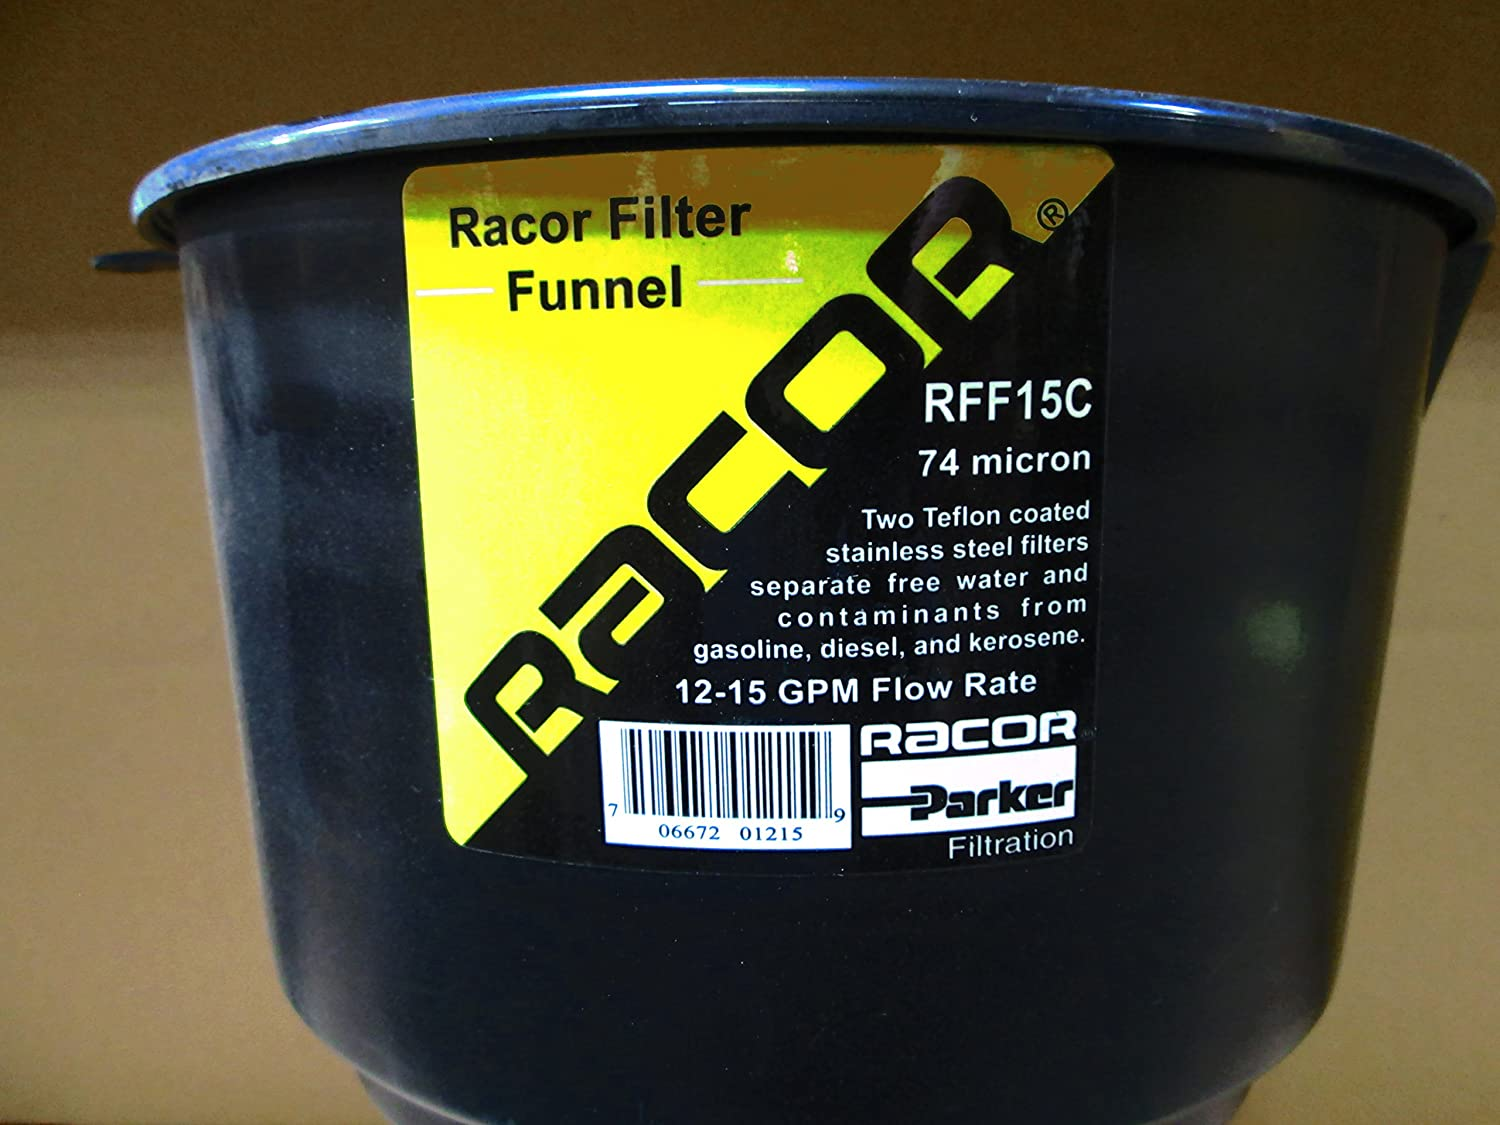 Racor RFF15C Fuel Filter Funnel 15.0gpm 74 Micron High Flow, Fuel System  Tools - Amazon Canada